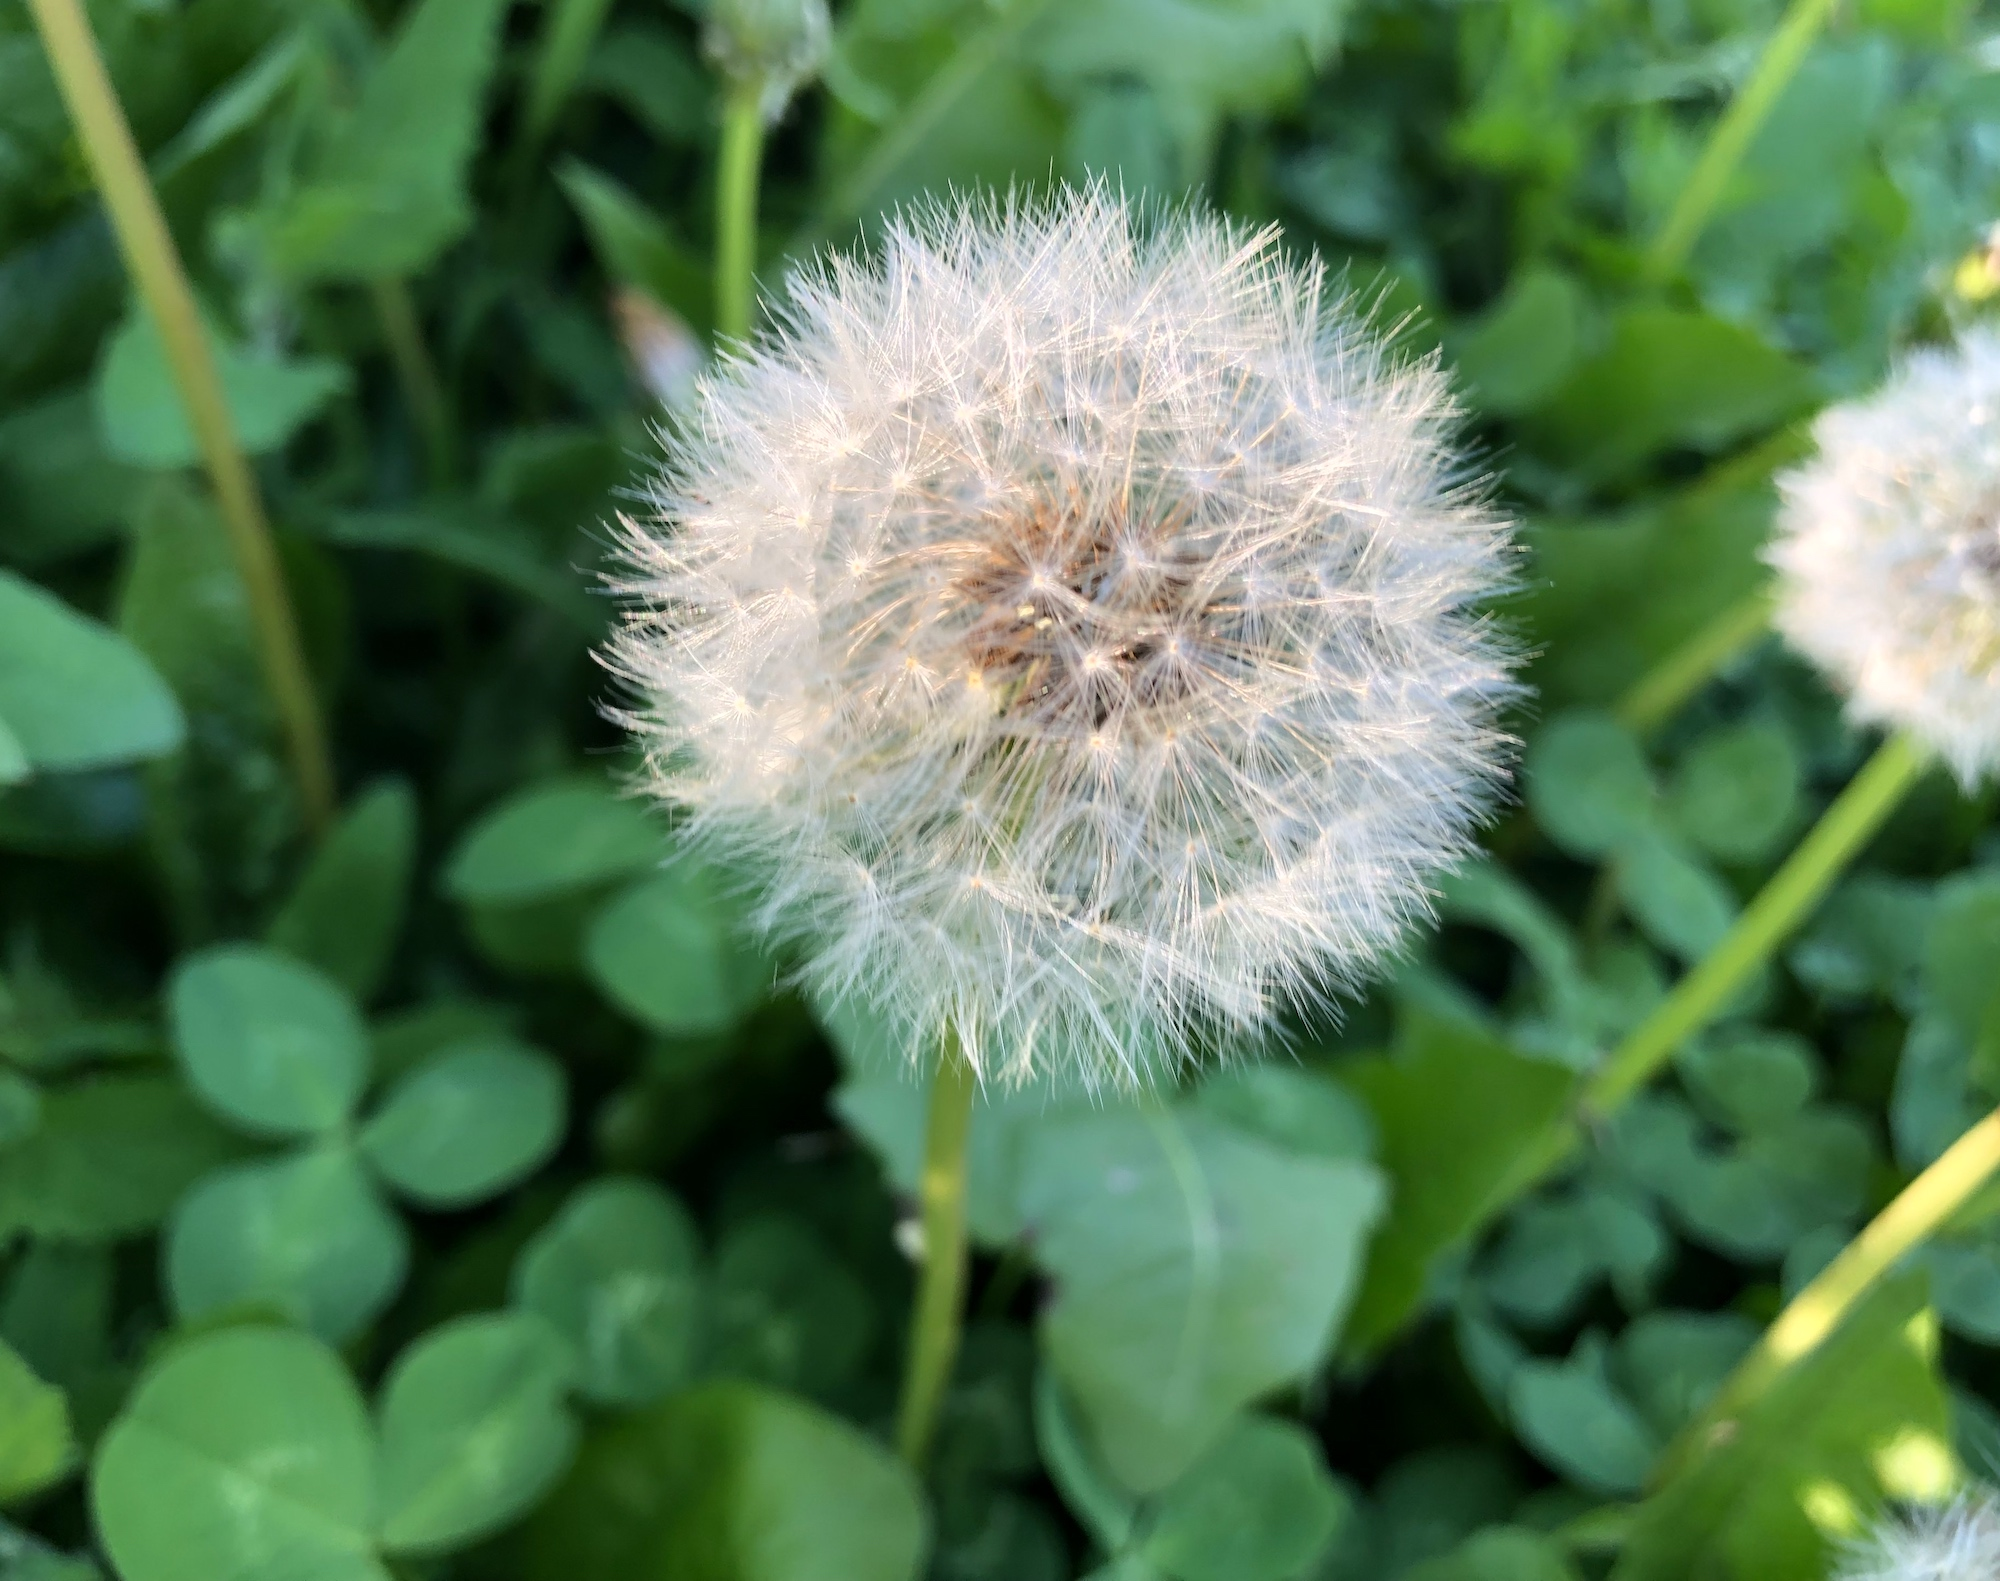 Dandelion puffball in Nakoma Park in Madison, Wisconsin on May 26, 2020.